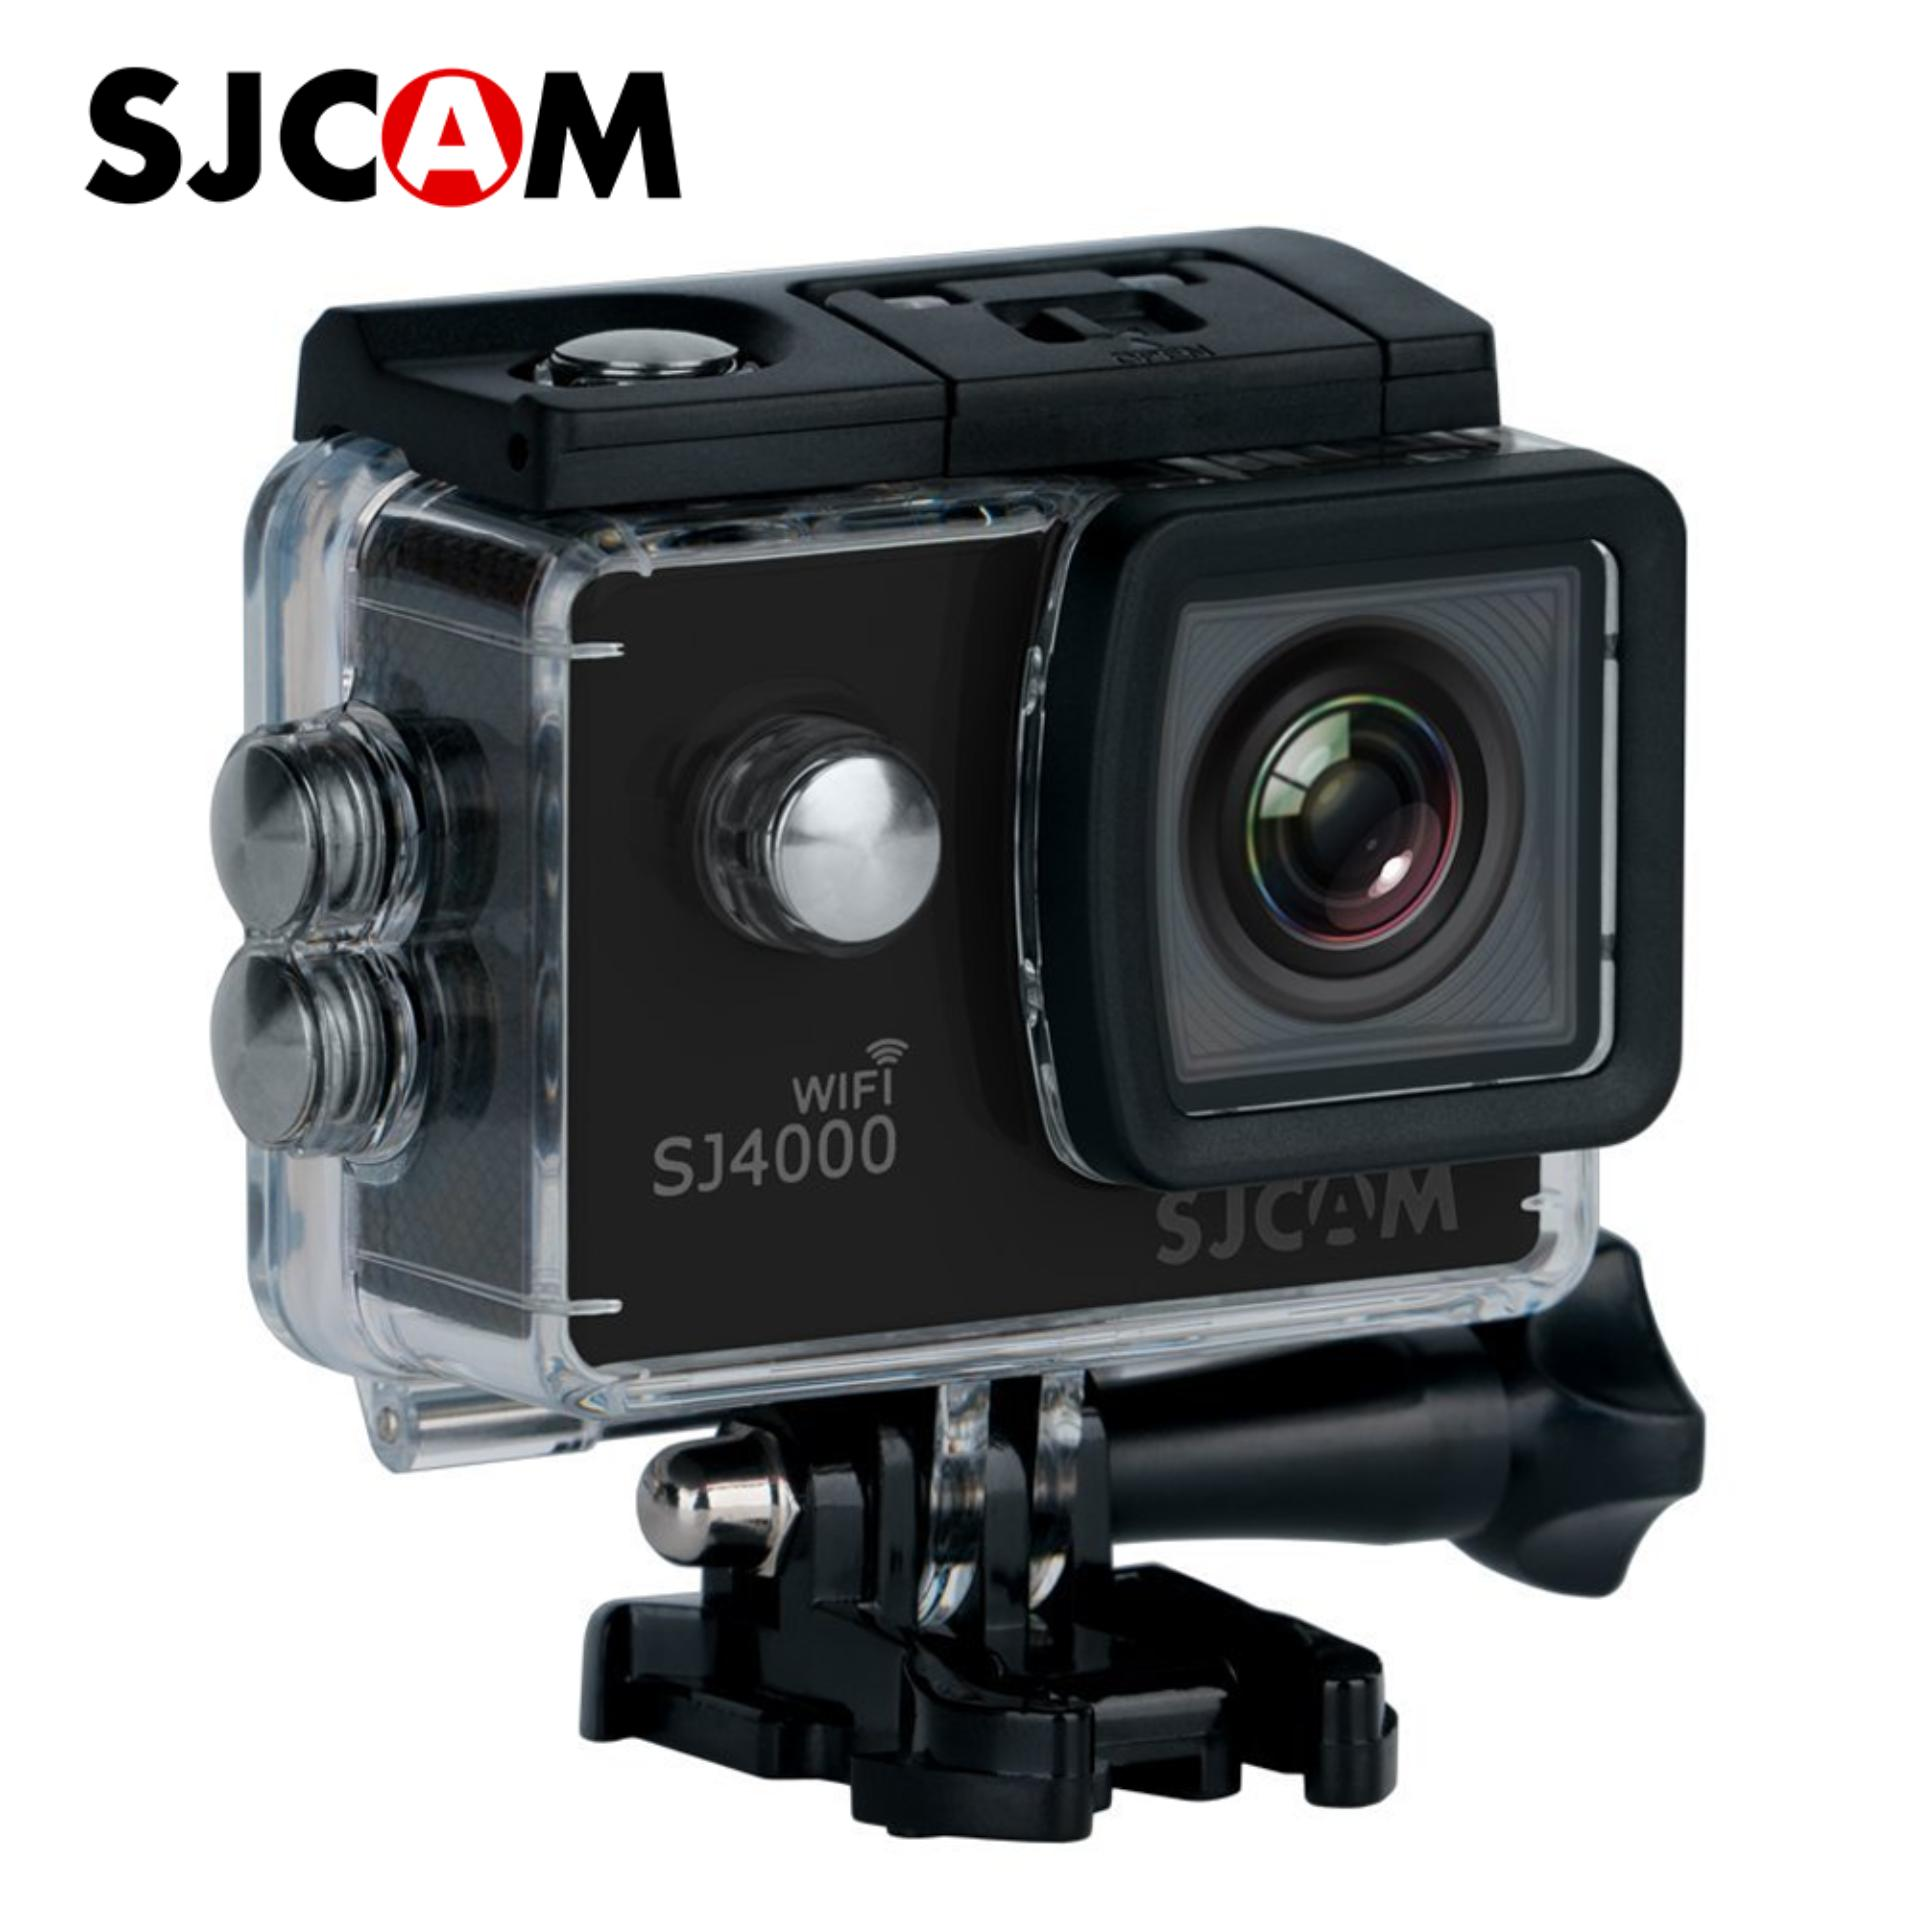 Action Cam For Sale Camcorder Prices Brands Specs In Sport Full Hd Dv 1080p Sj4000 Waterproof 12mp Camera Kogan Sjcam Wi Fi 20 Lcd Screen 4x Optical Zoom